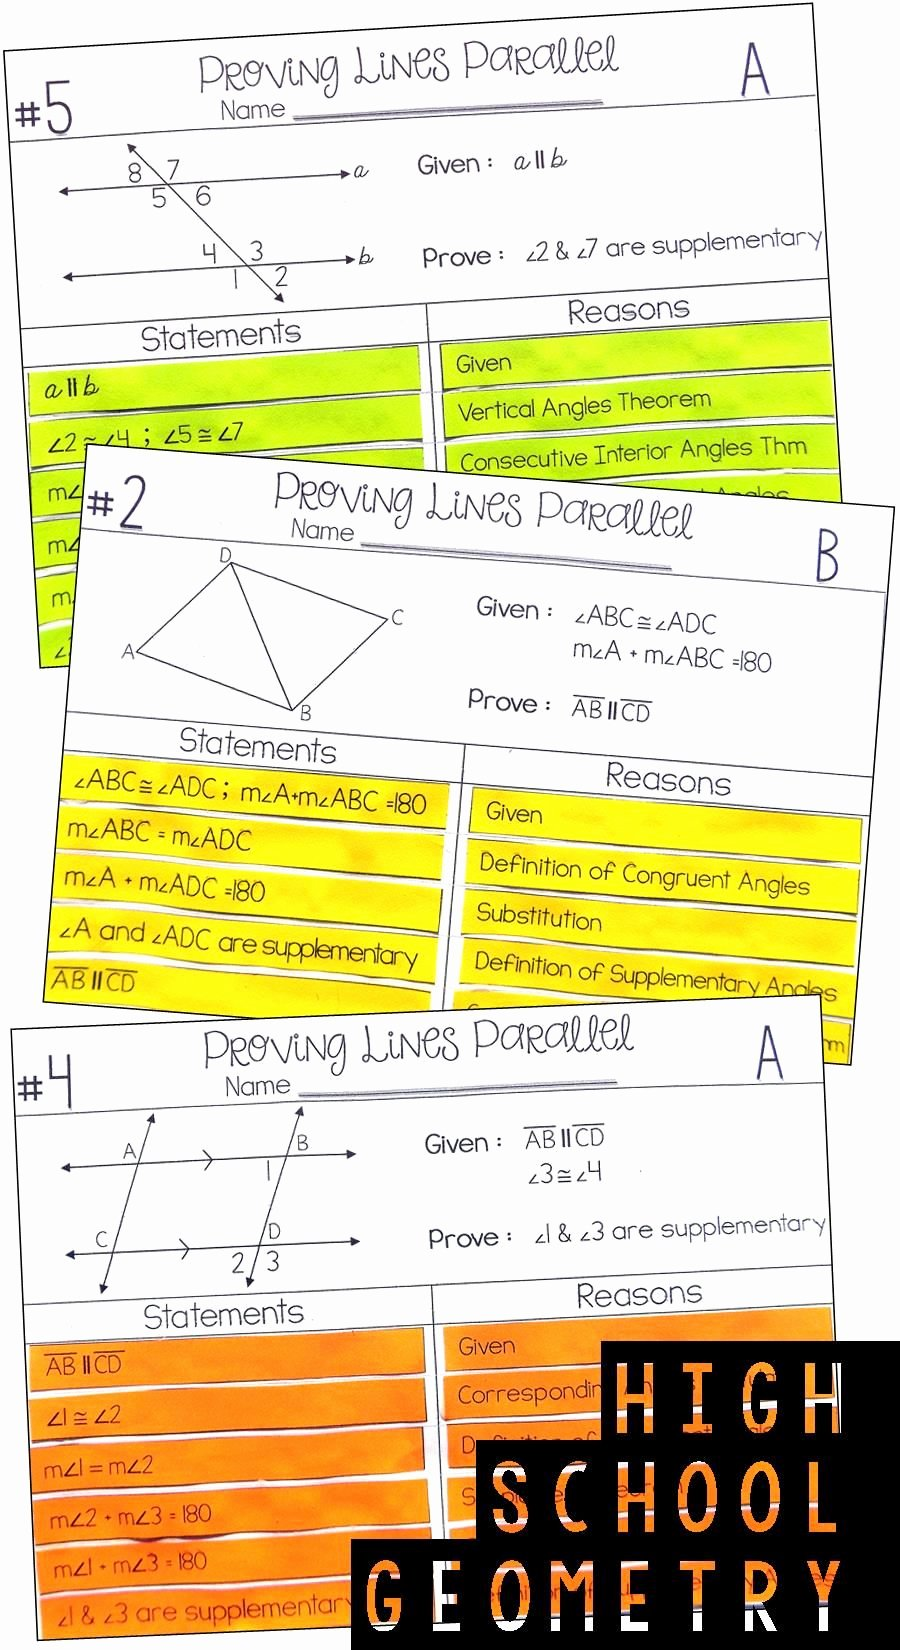 Proving Lines Parallel Worksheet Beautiful Proving Lines Parallel Proof Activity